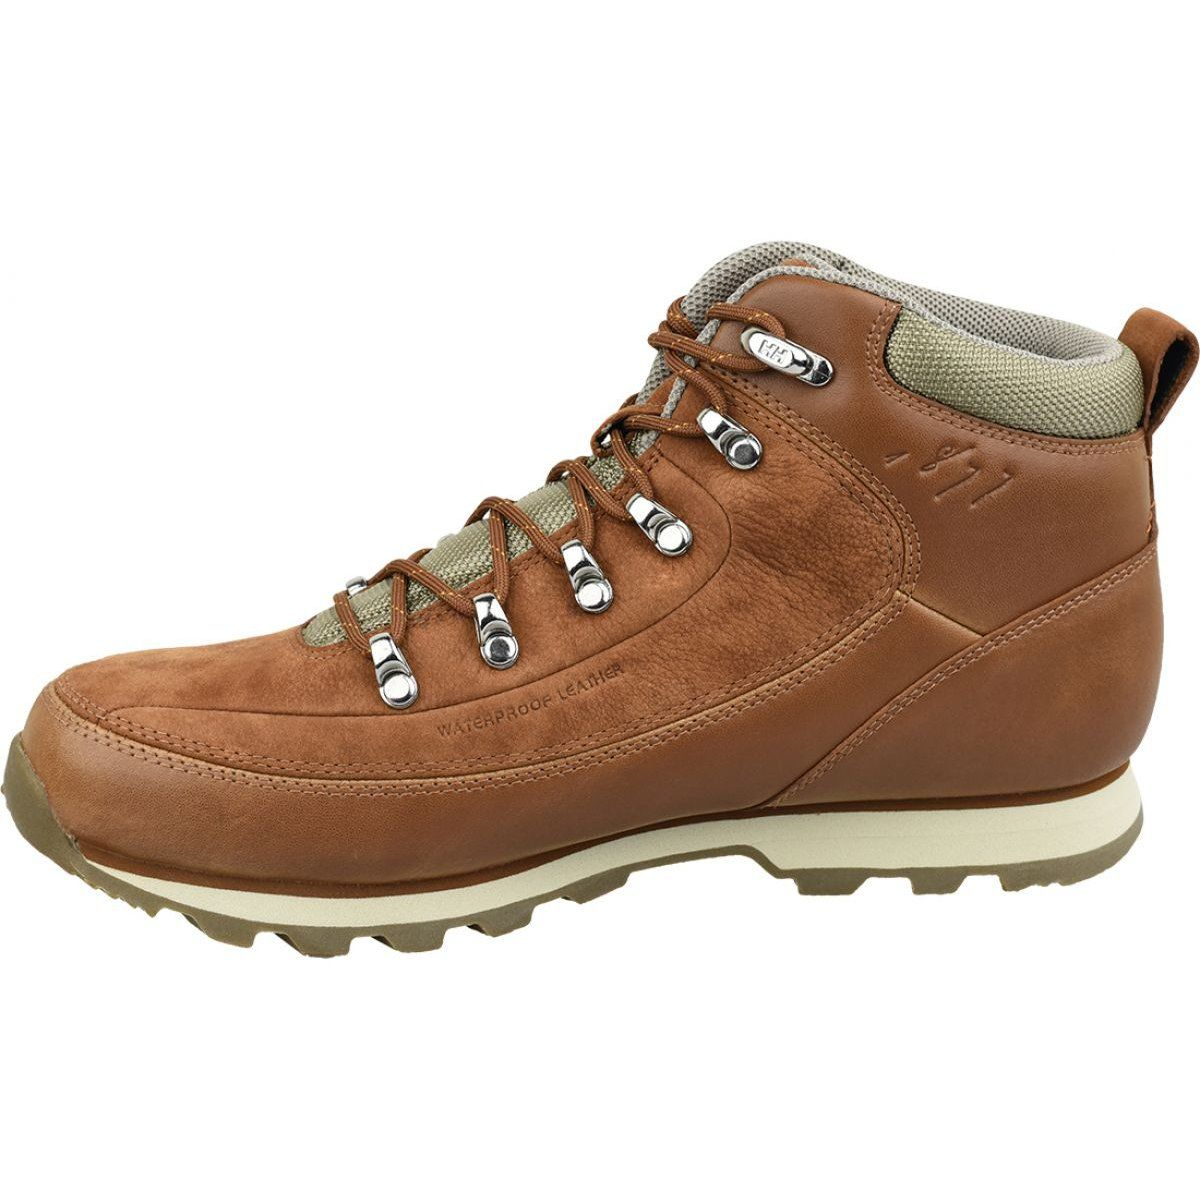 Buty Helly Hansen The Forester W 10516 580 Brazowe Shoes Helly Hansen Boots